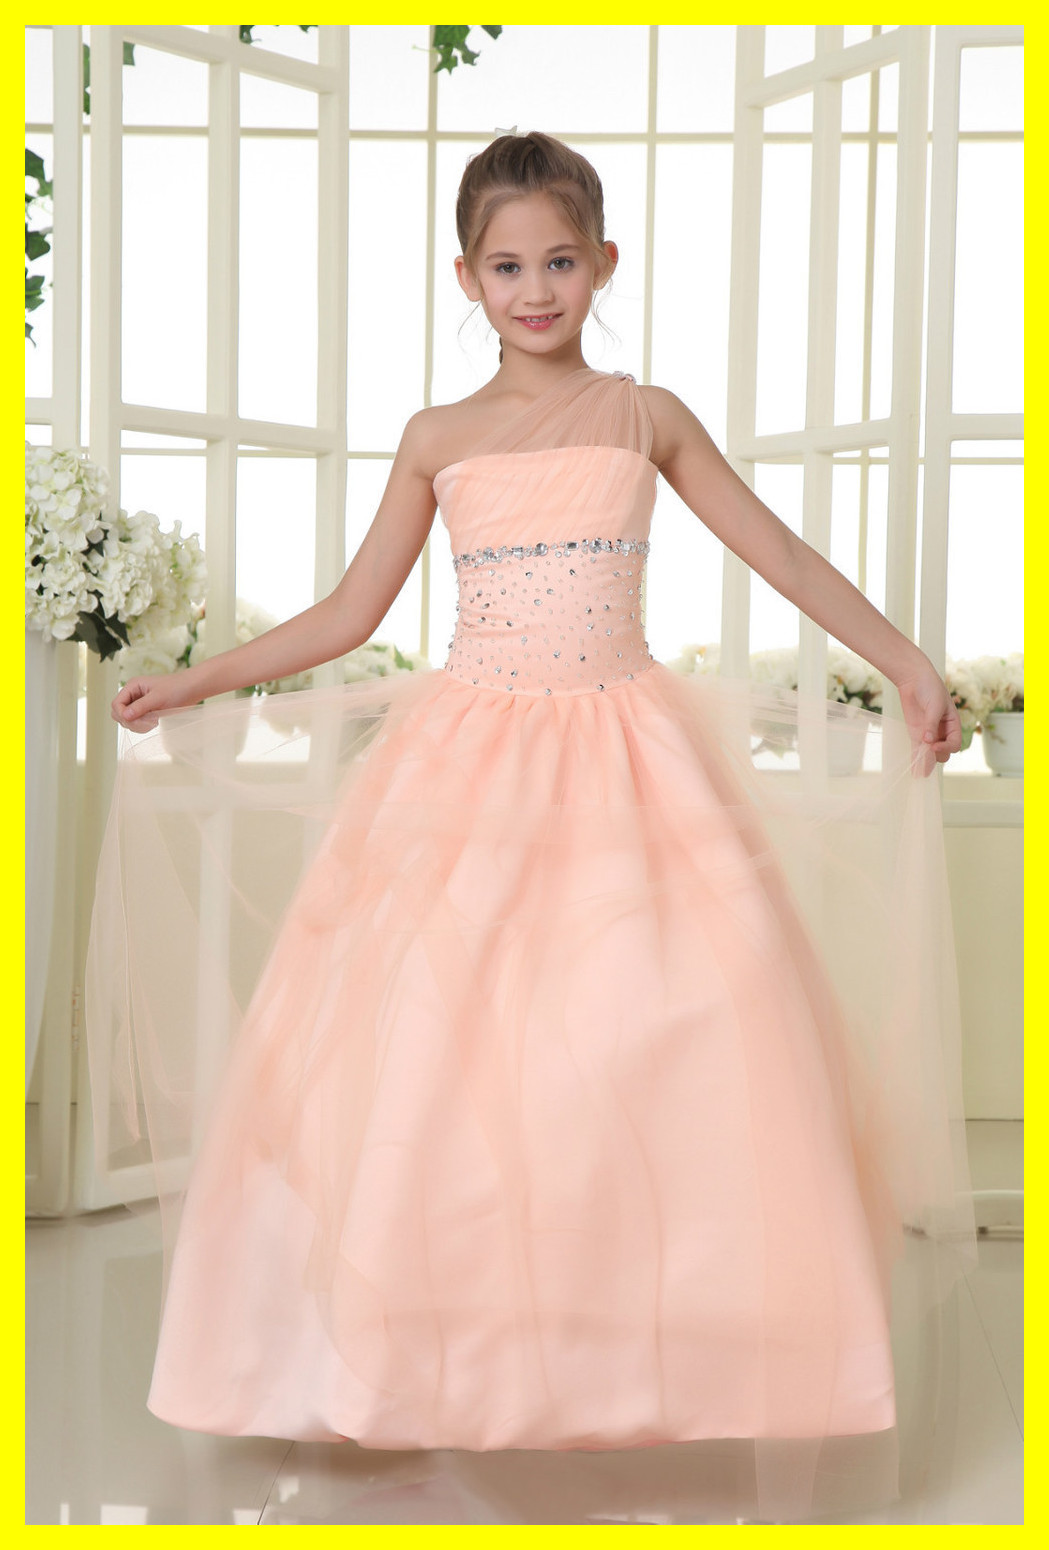 Silver Flower Girl Dress Dresses Canada Tulle Girls Weddings Big Scalloped One Shoulder Sleeveless Beading A-Line 2015 In Stock(China (Mainland))